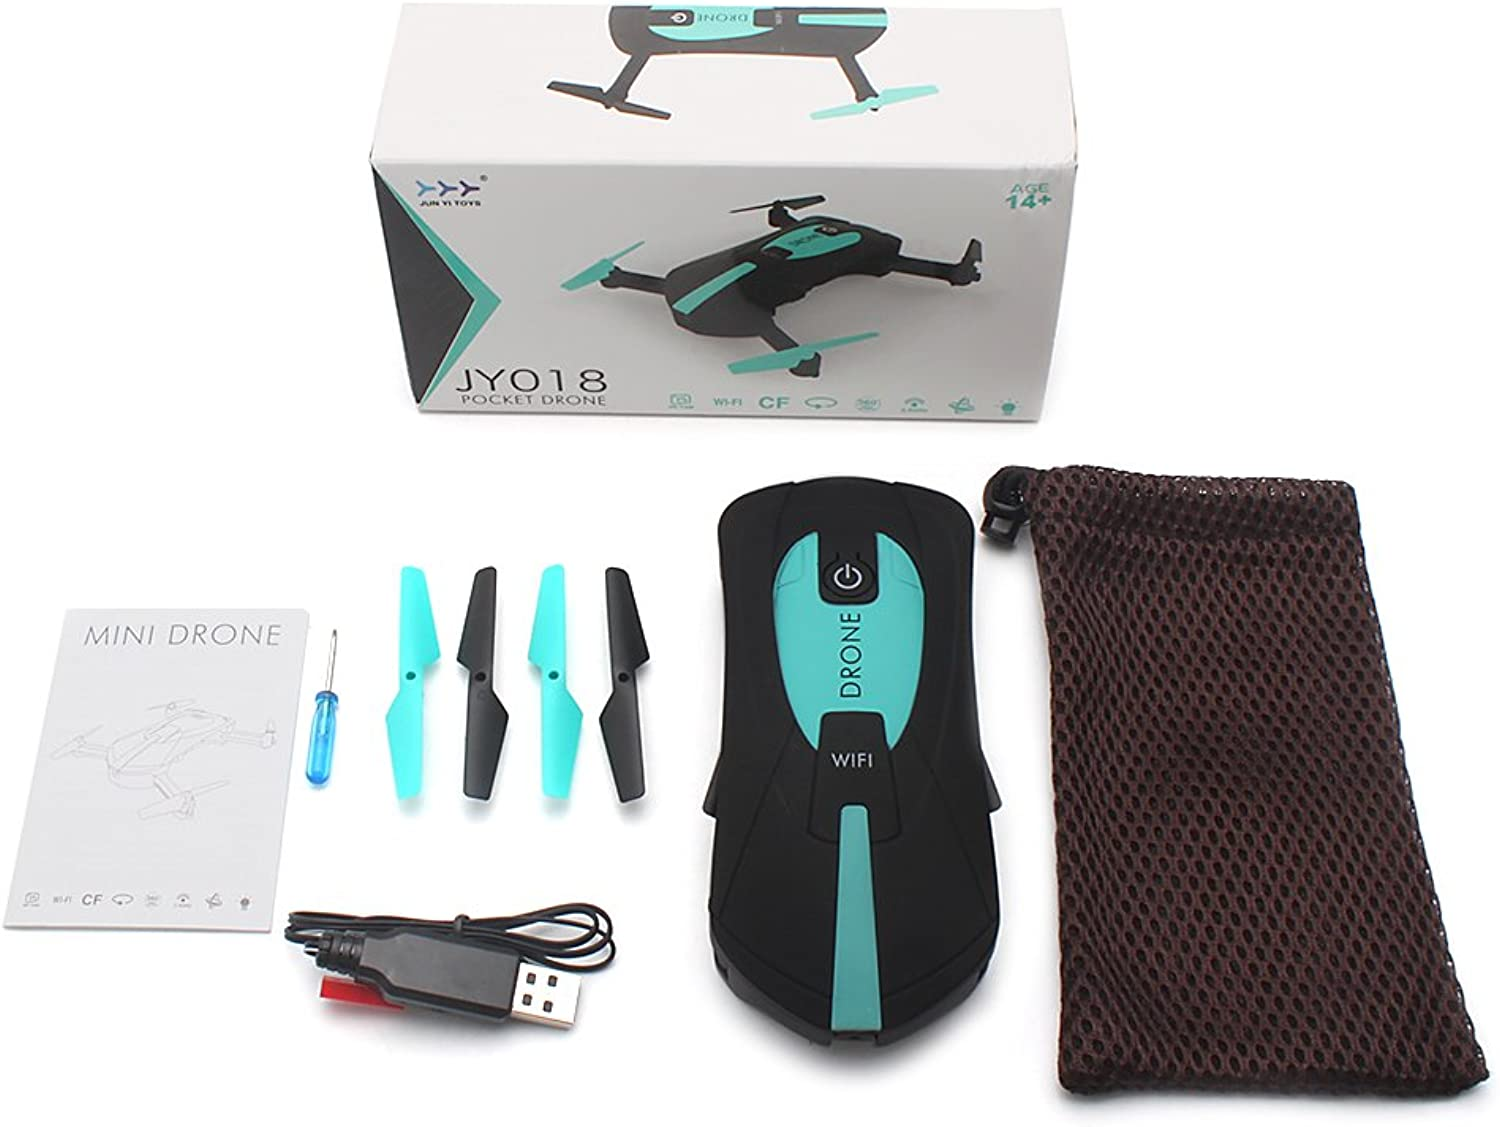 RC Drones with Camera,Thobu JY018 Mini Drone Foldable WiFi HD 0.3MP Camera Quadcopter Selfie RC Drones